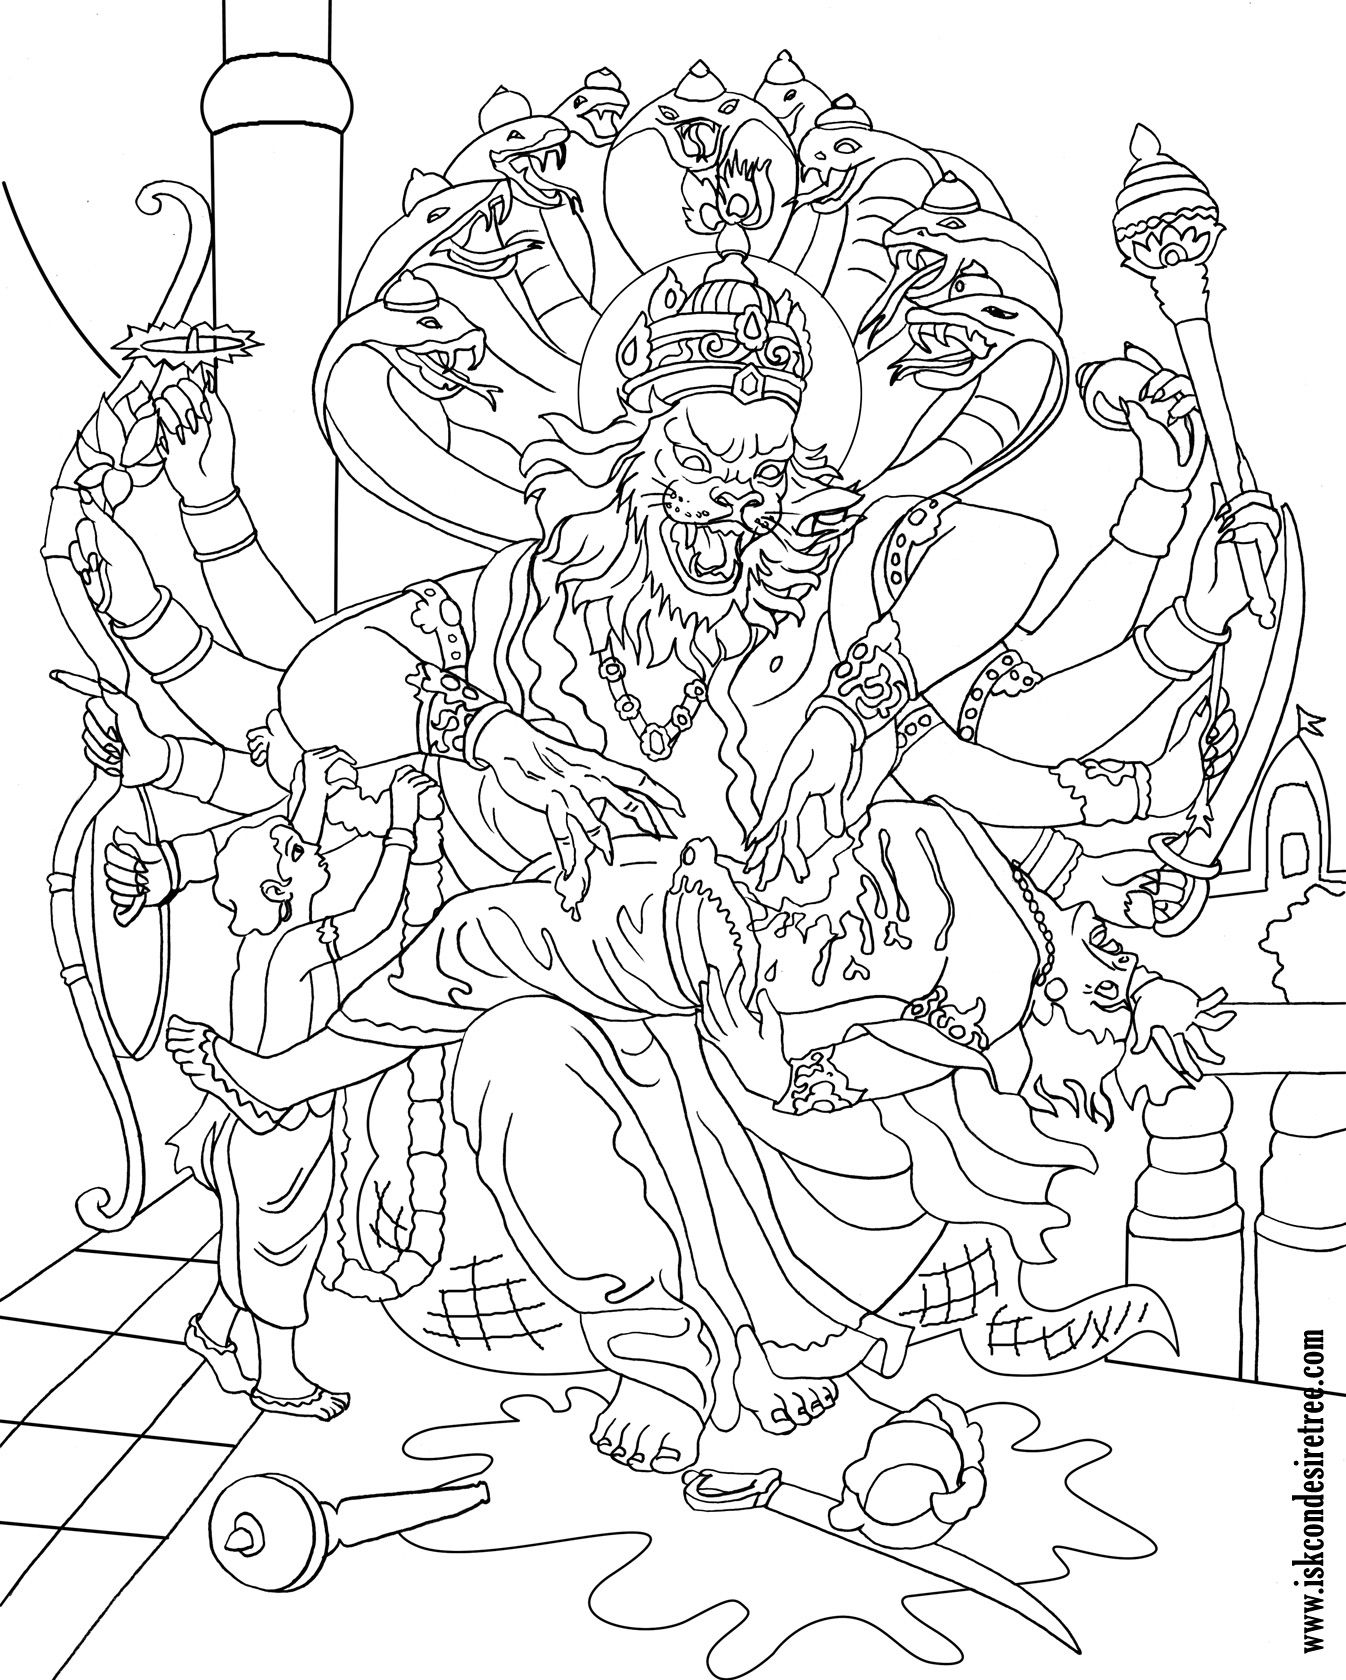 coloring pages of krishna krishna coloring google search krishna art art adult coloring krishna of pages